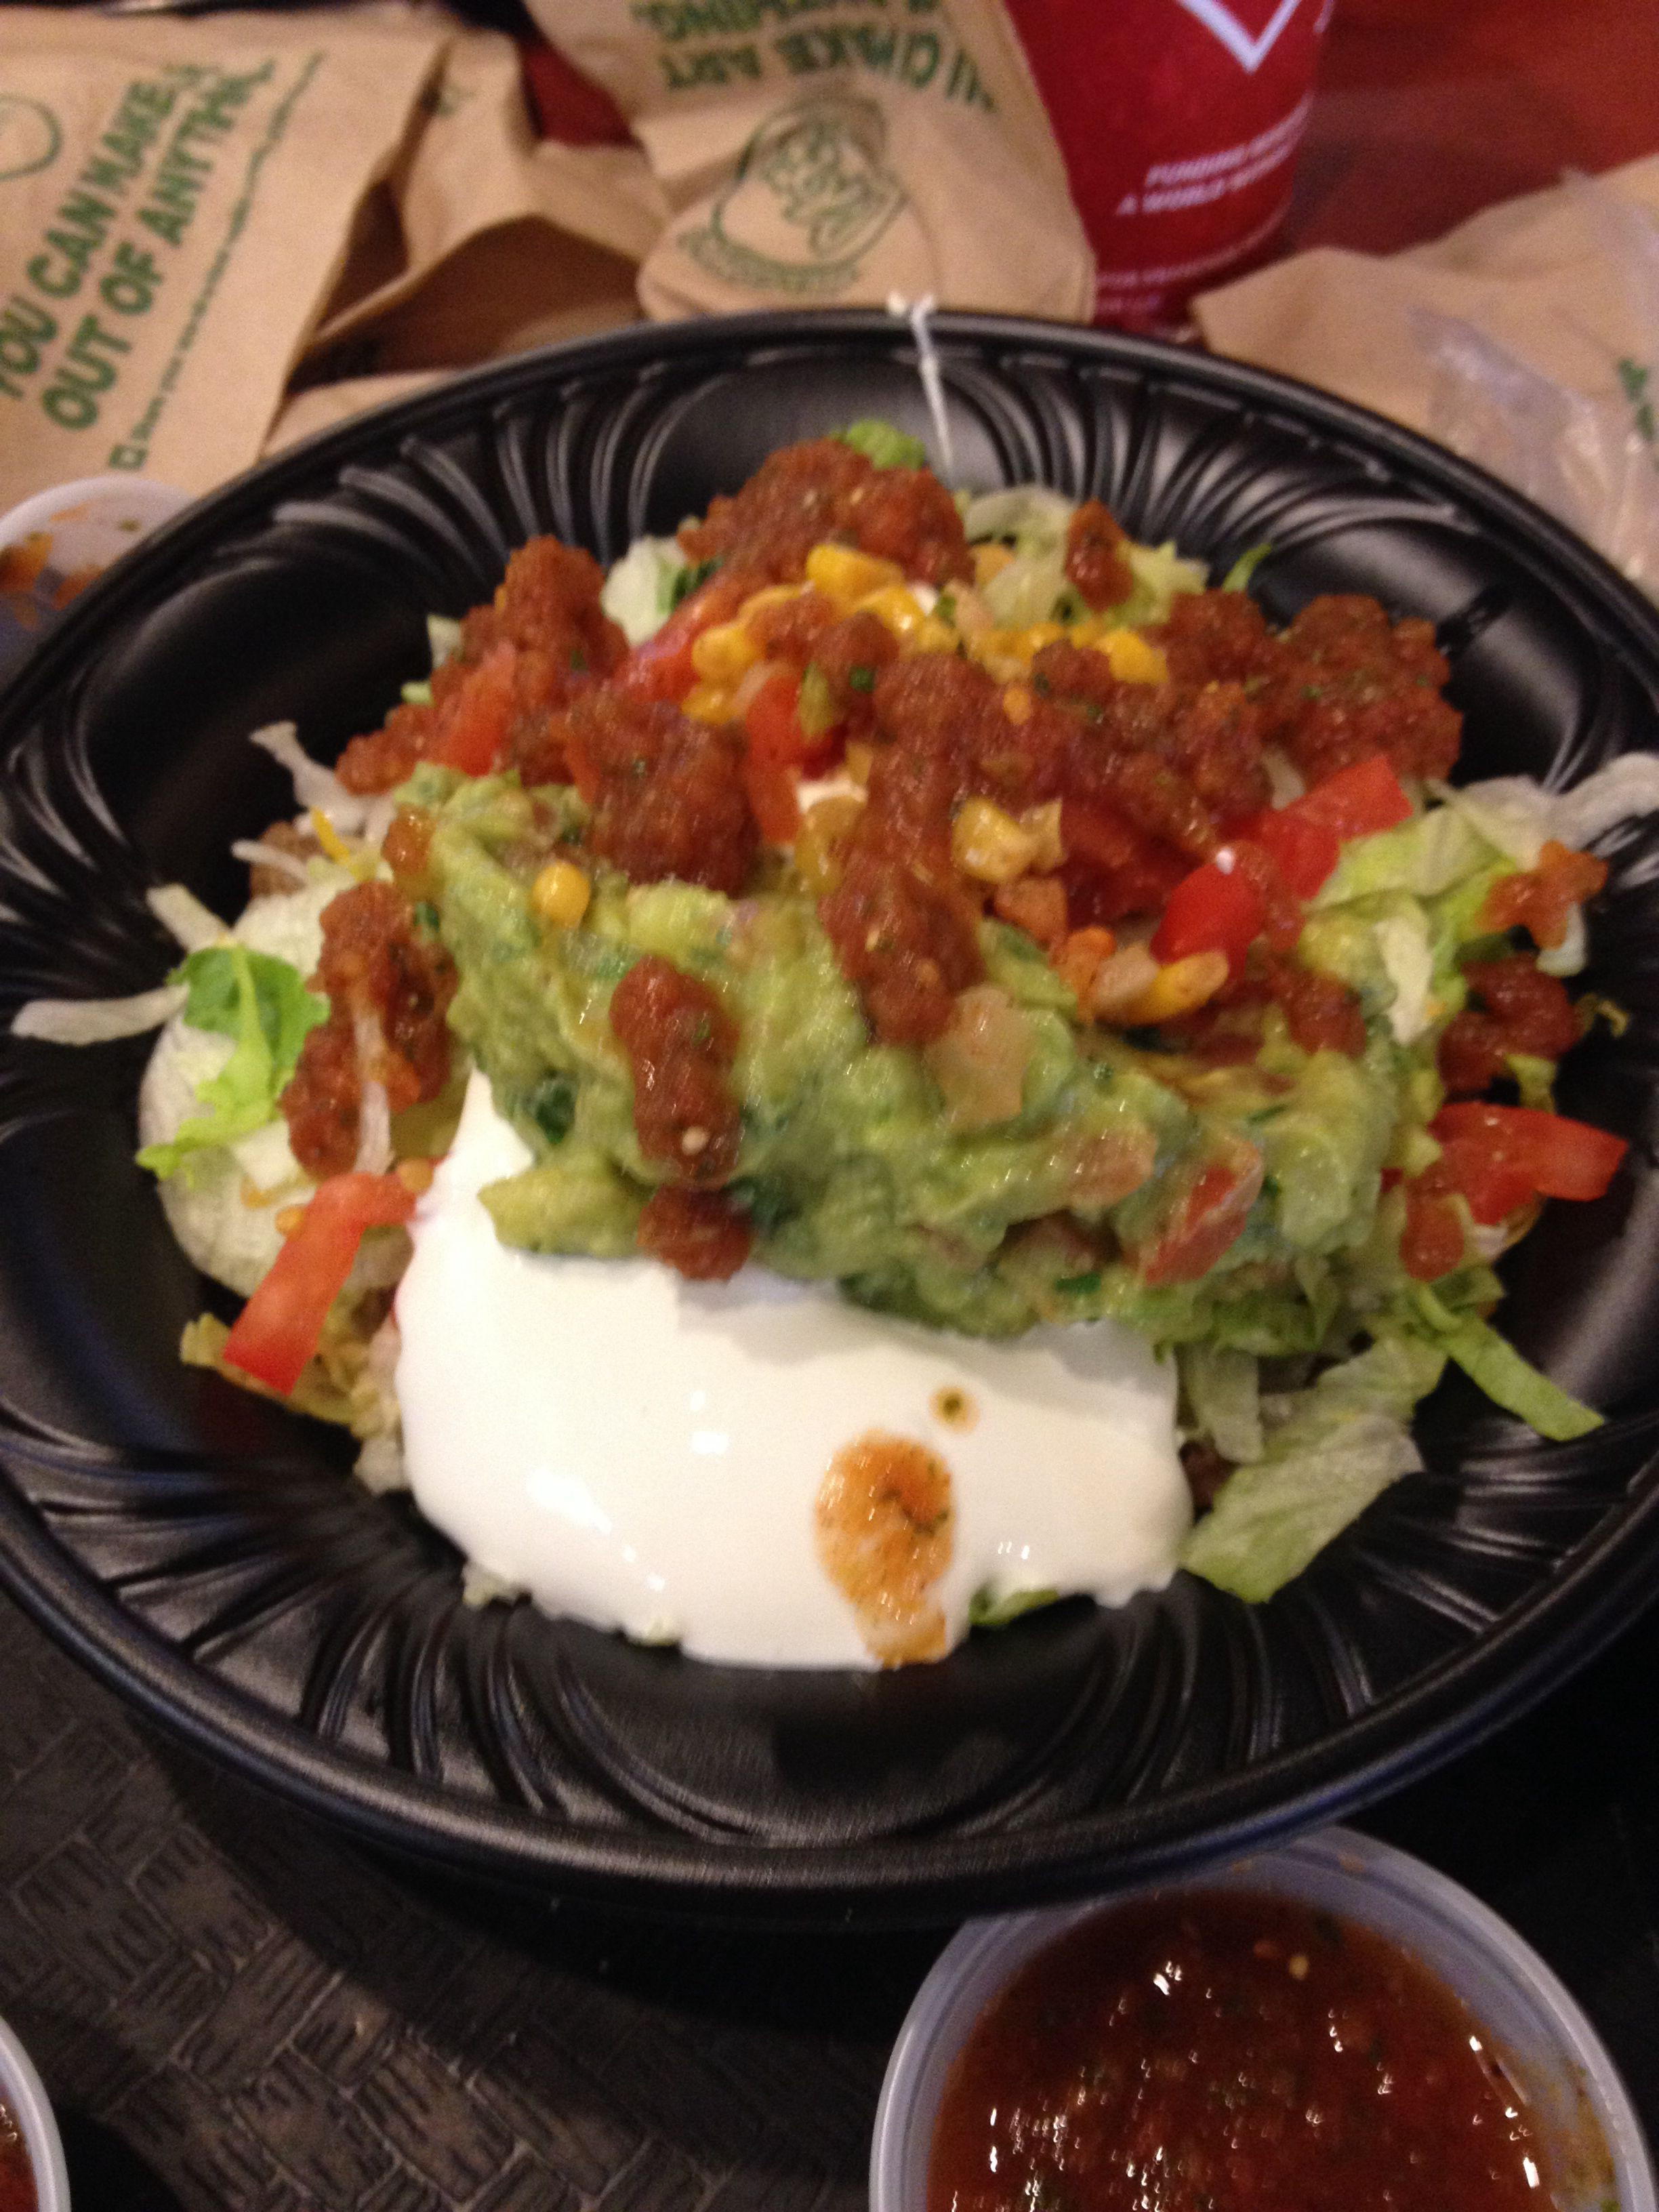 Moes Breakfast Bowls  Moe s Monday Burrito Bowl from Moe s